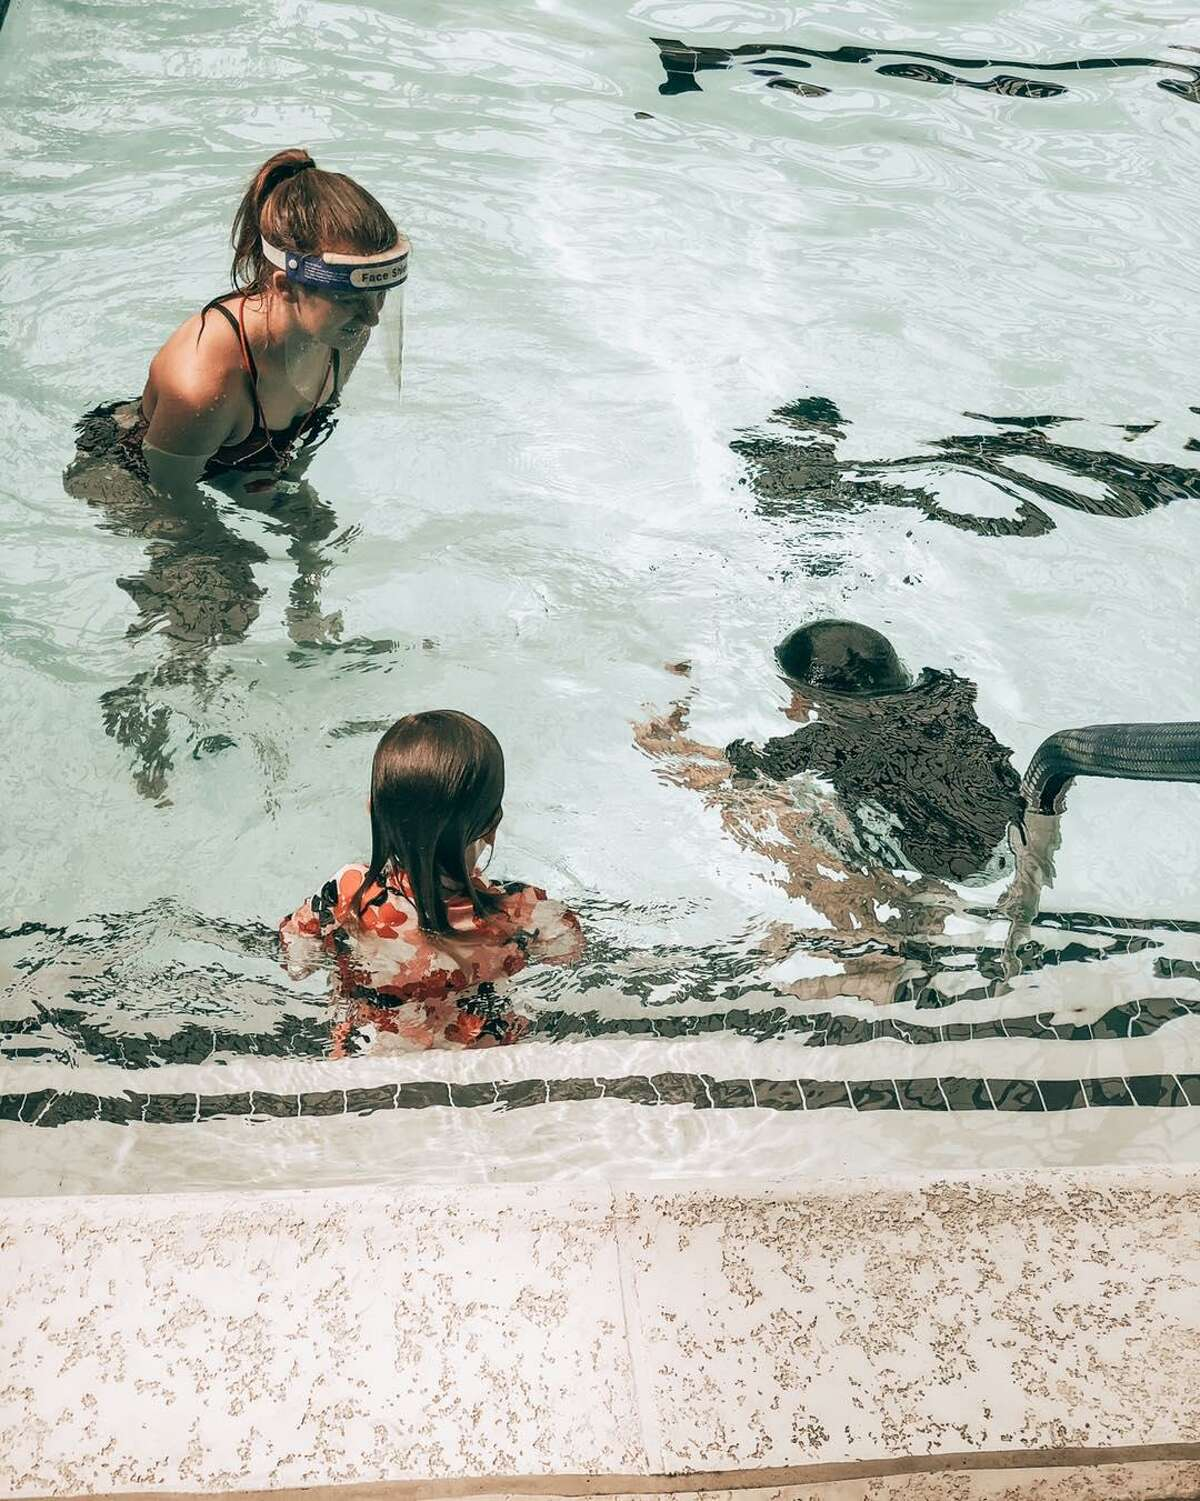 The D. Bradley McWilliams YMCA is offering water safety and swimming lessons for all ages along with other locations in the greater Houston area.